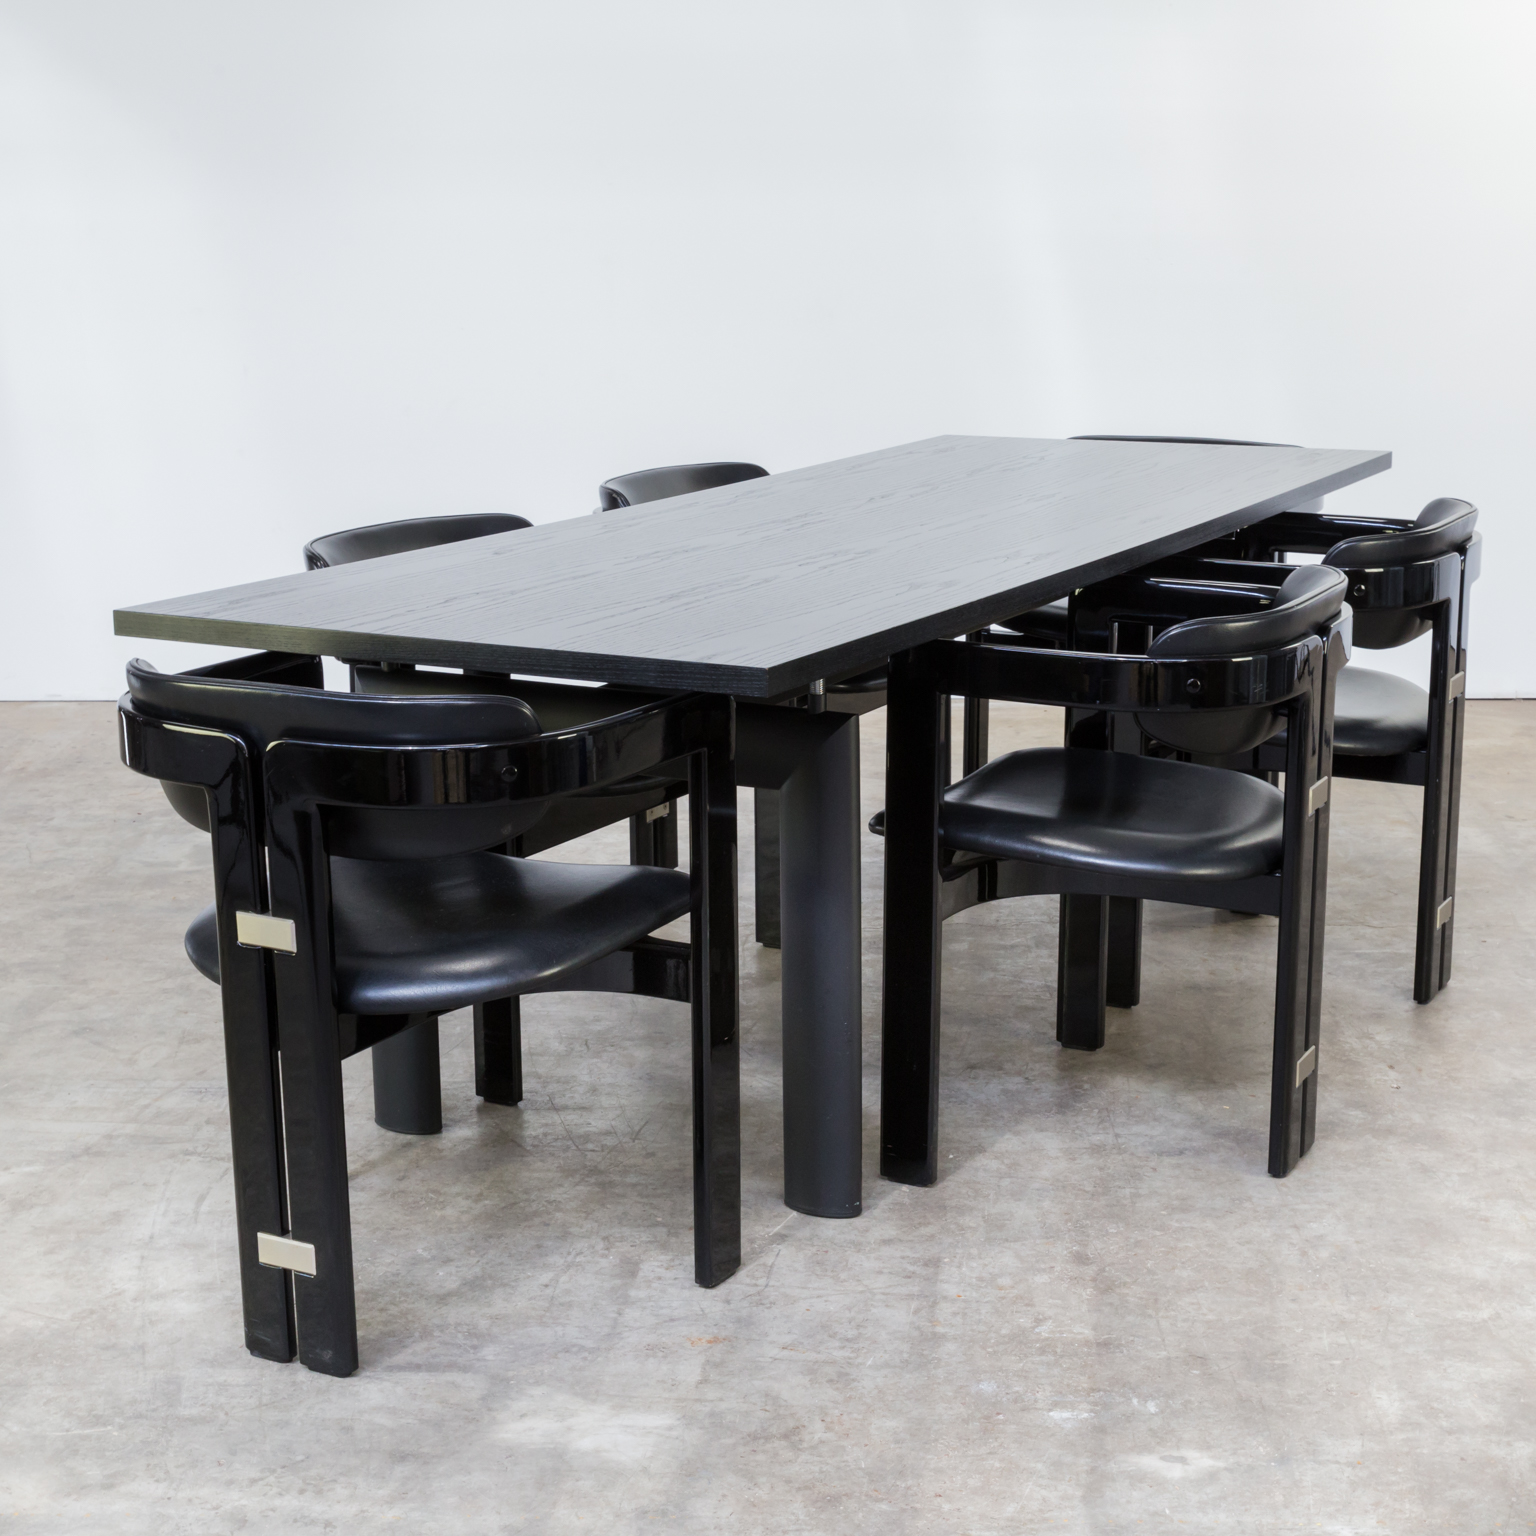 80s le corbusier lc6n nr 47905 dining table for cassina barbmama. Black Bedroom Furniture Sets. Home Design Ideas